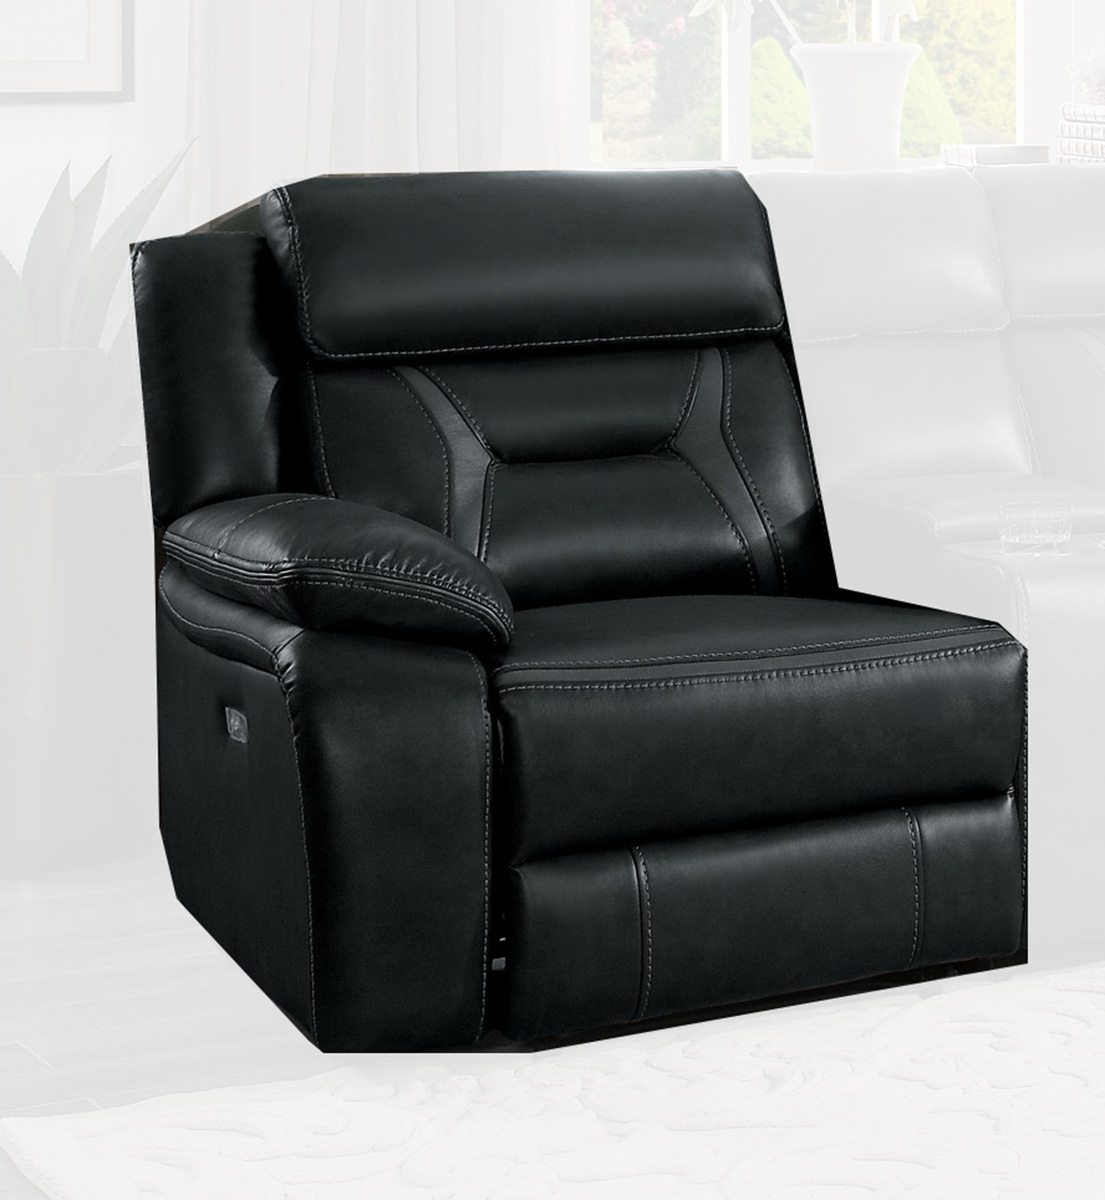 Homelegance Amite Power Left Side Reclining Chair - Dark Gray